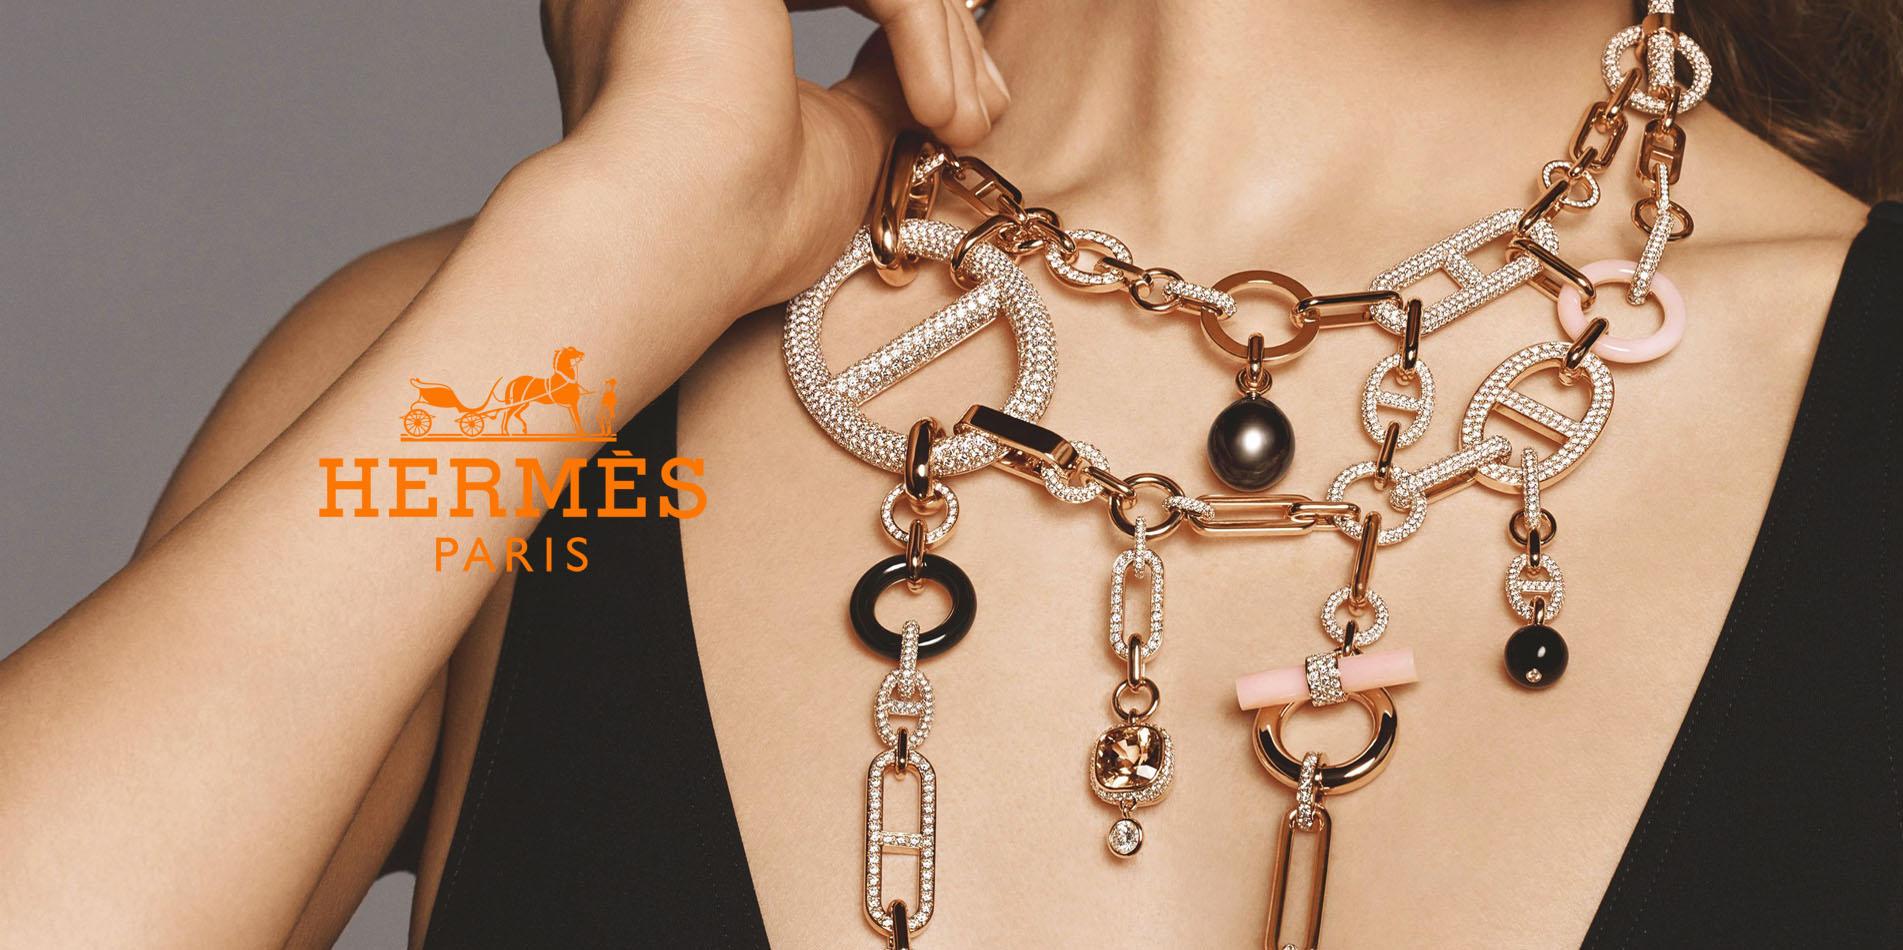 replica hermes jewelry sale